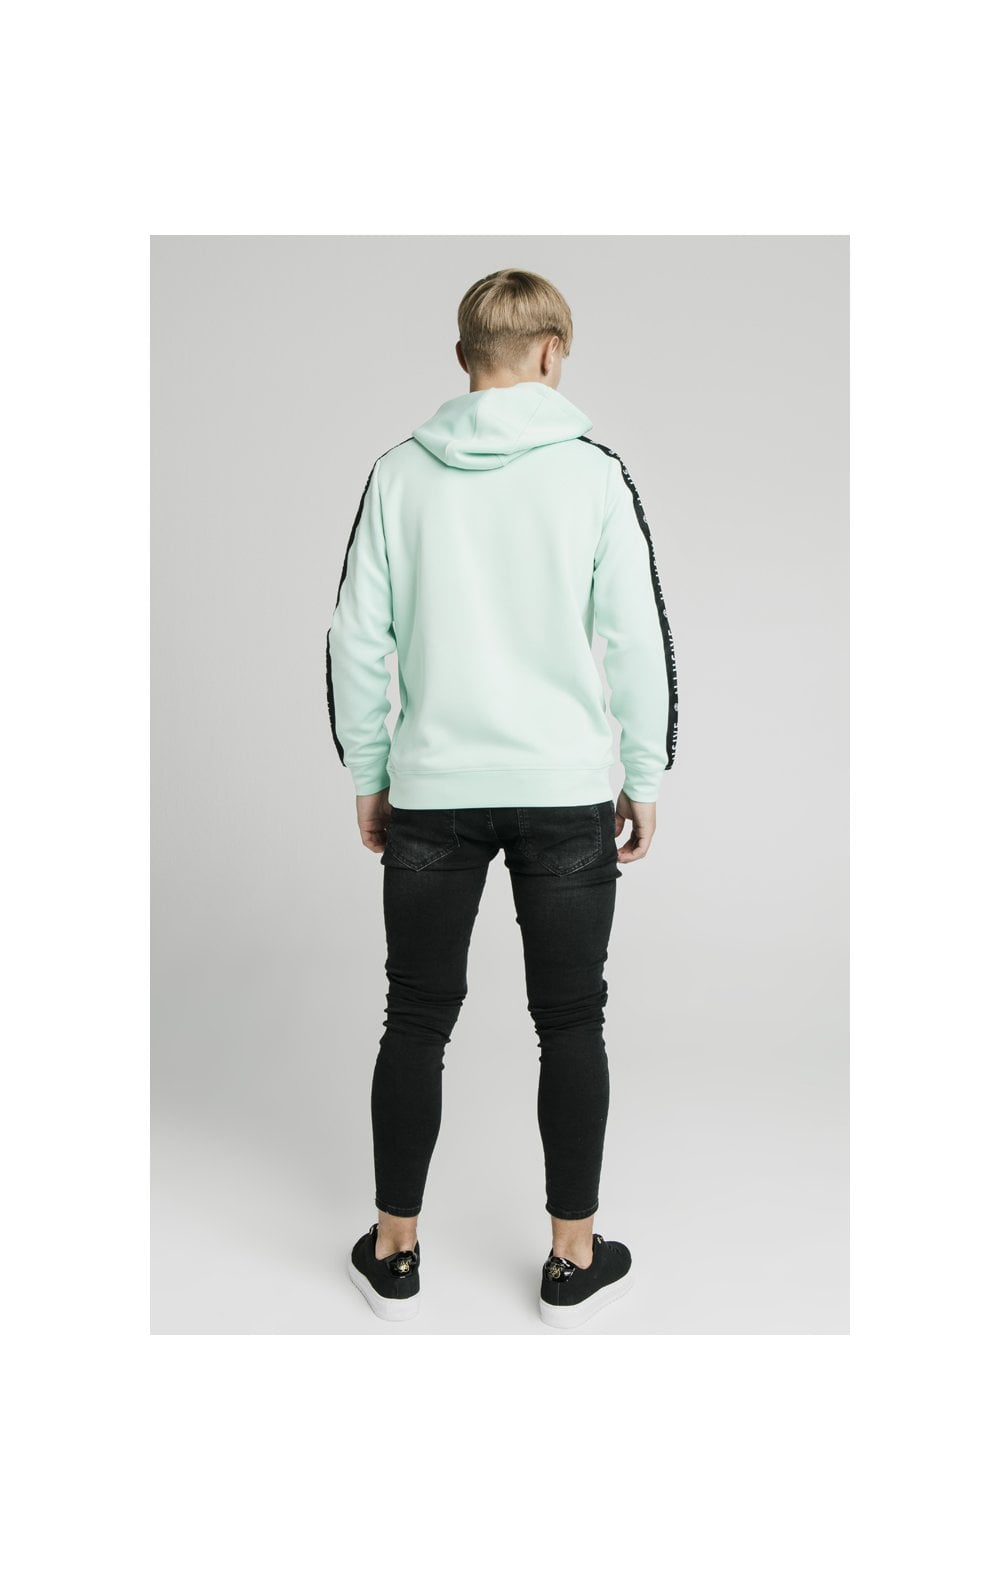 Load image into Gallery viewer, Illusive London Tape Overhead Hoodie - Mint (6)